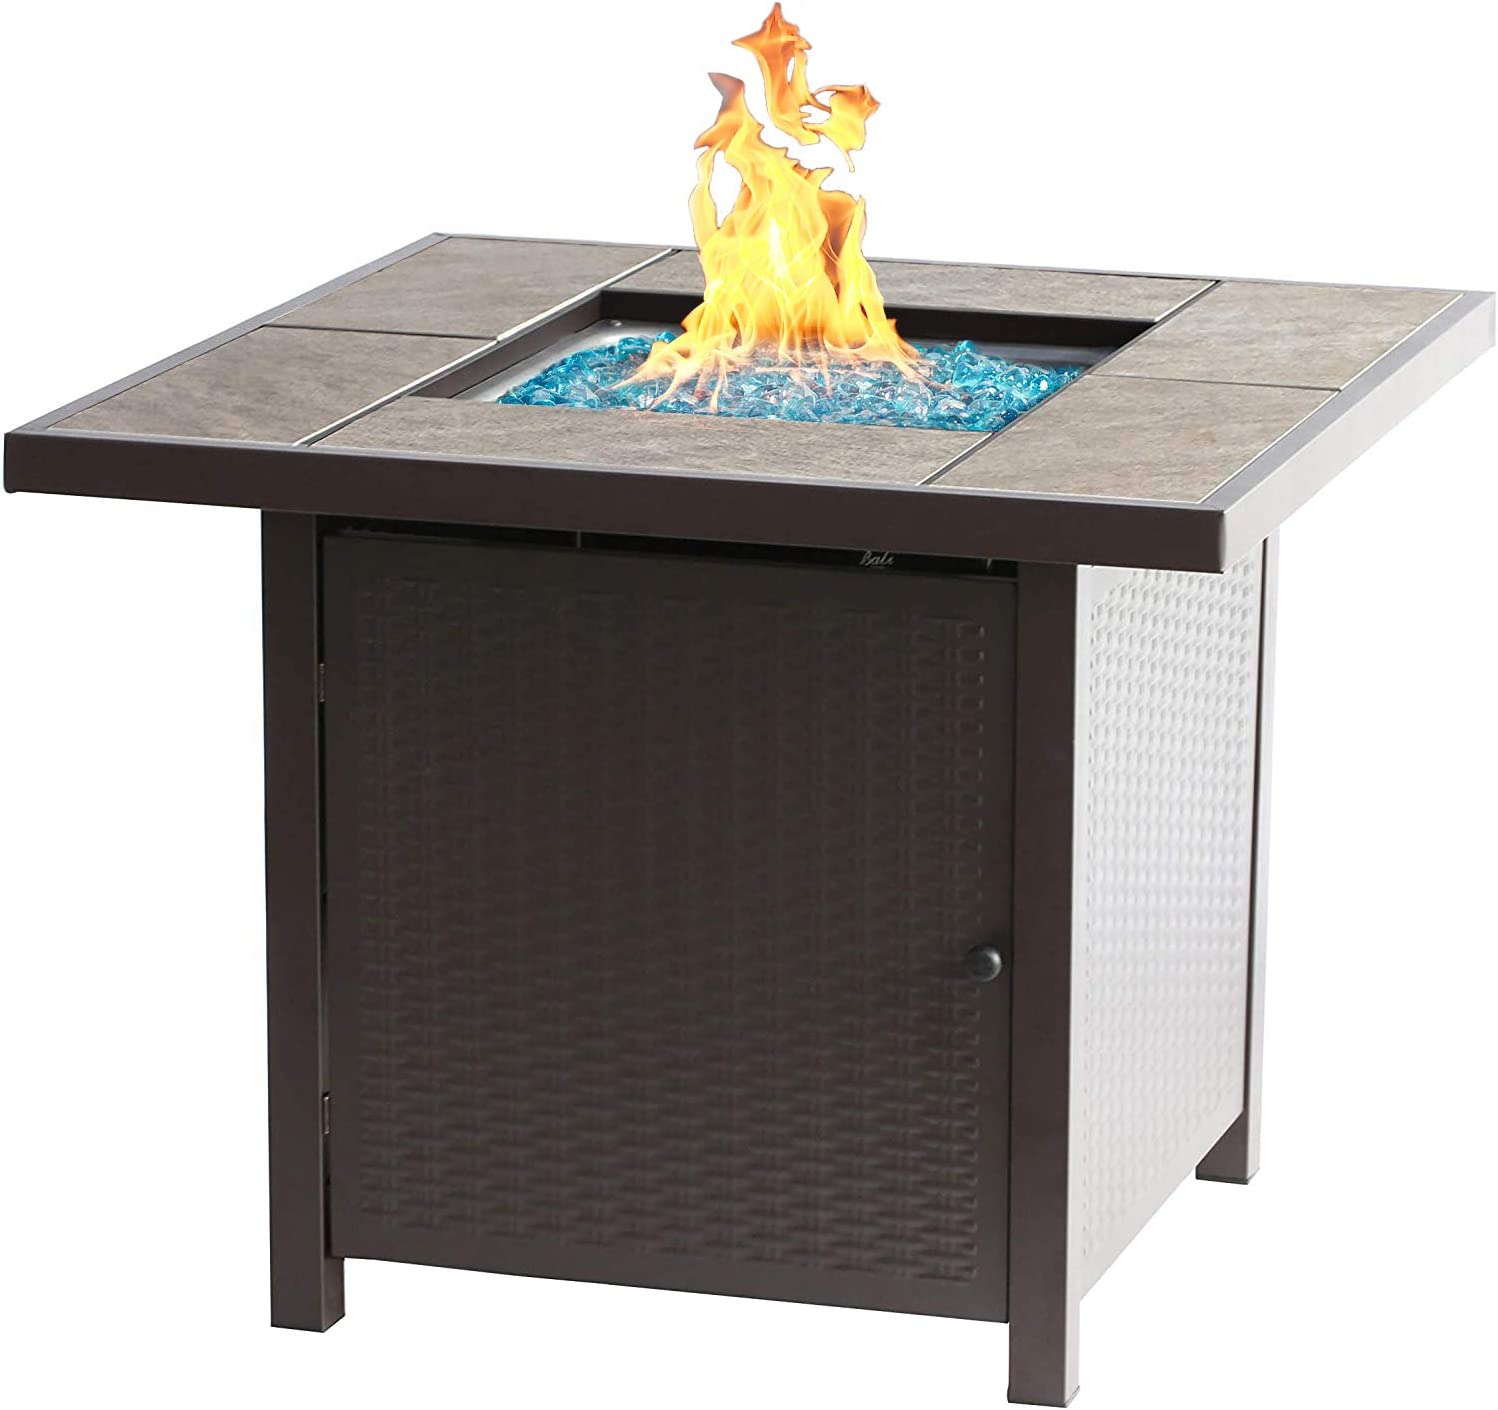 Amazon Com Bali Outdoors Propane Gas Fire Pit Table 32 Inch 50 000 Btu Square Gas Firepits For Outside Brown Garden Outdoor